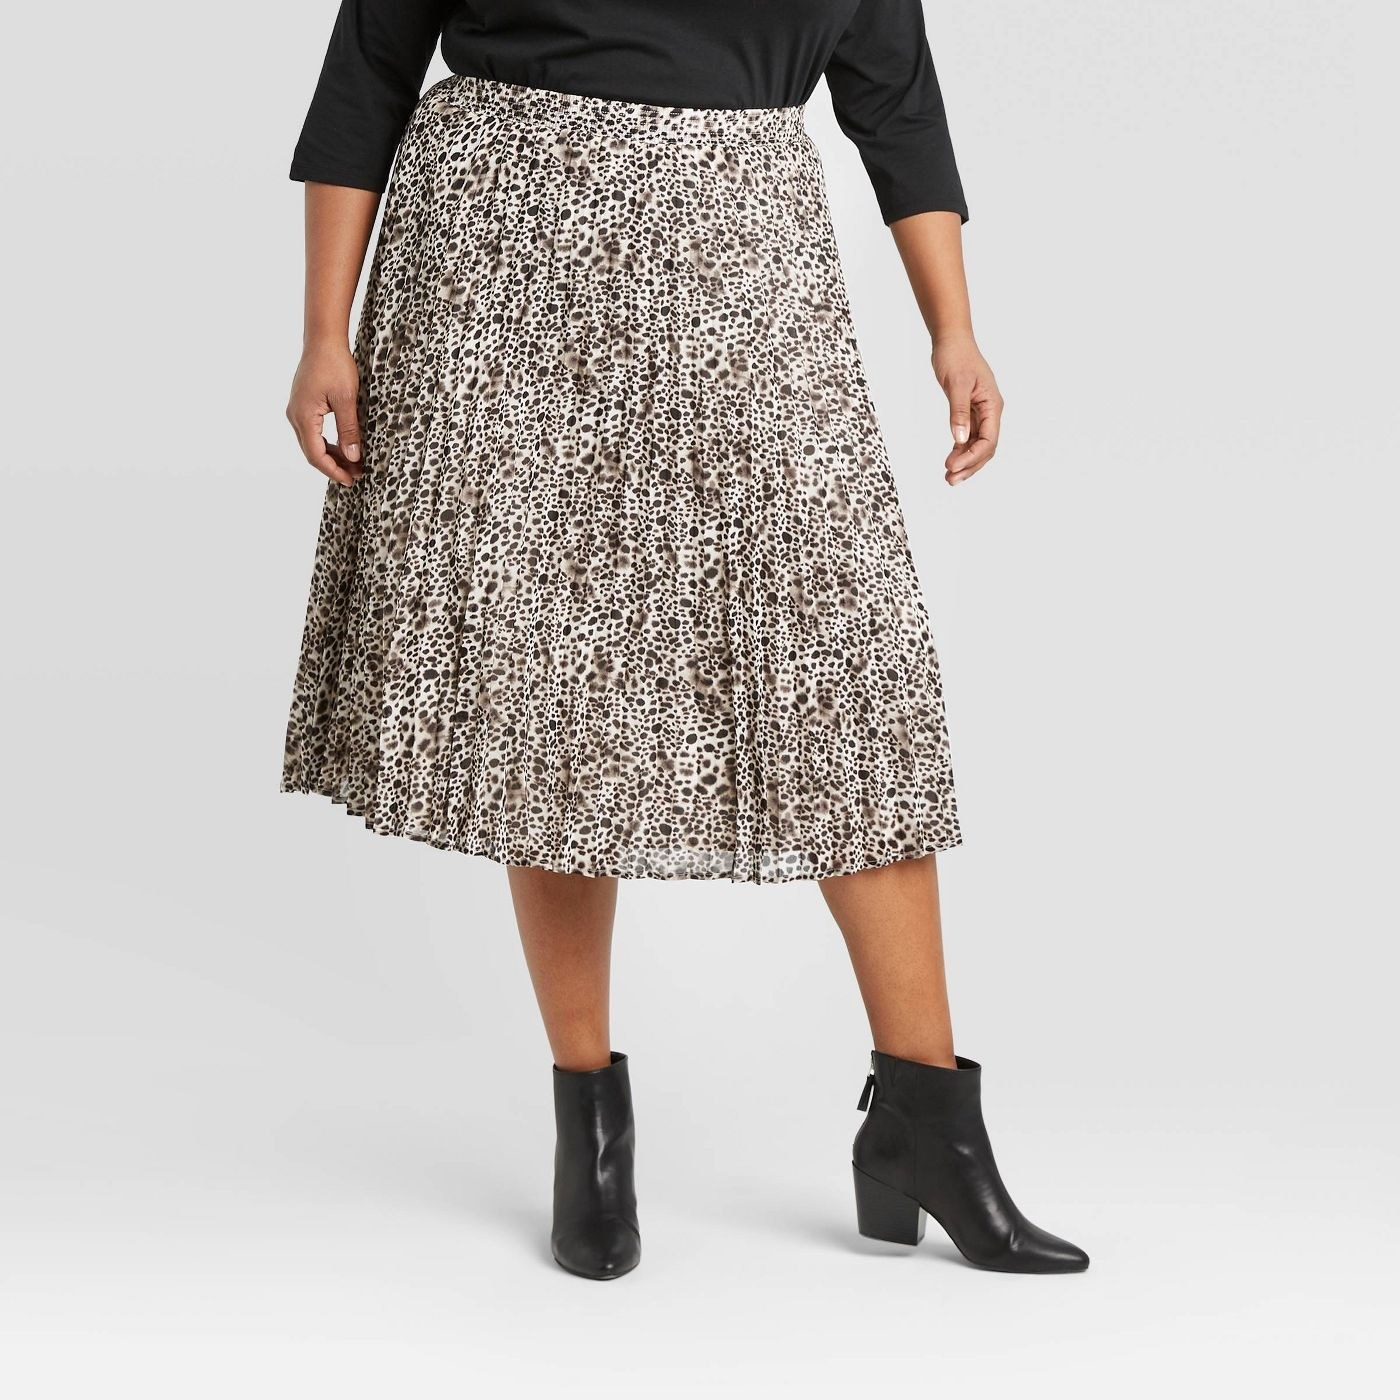 Model in the leopard-print midi skirt